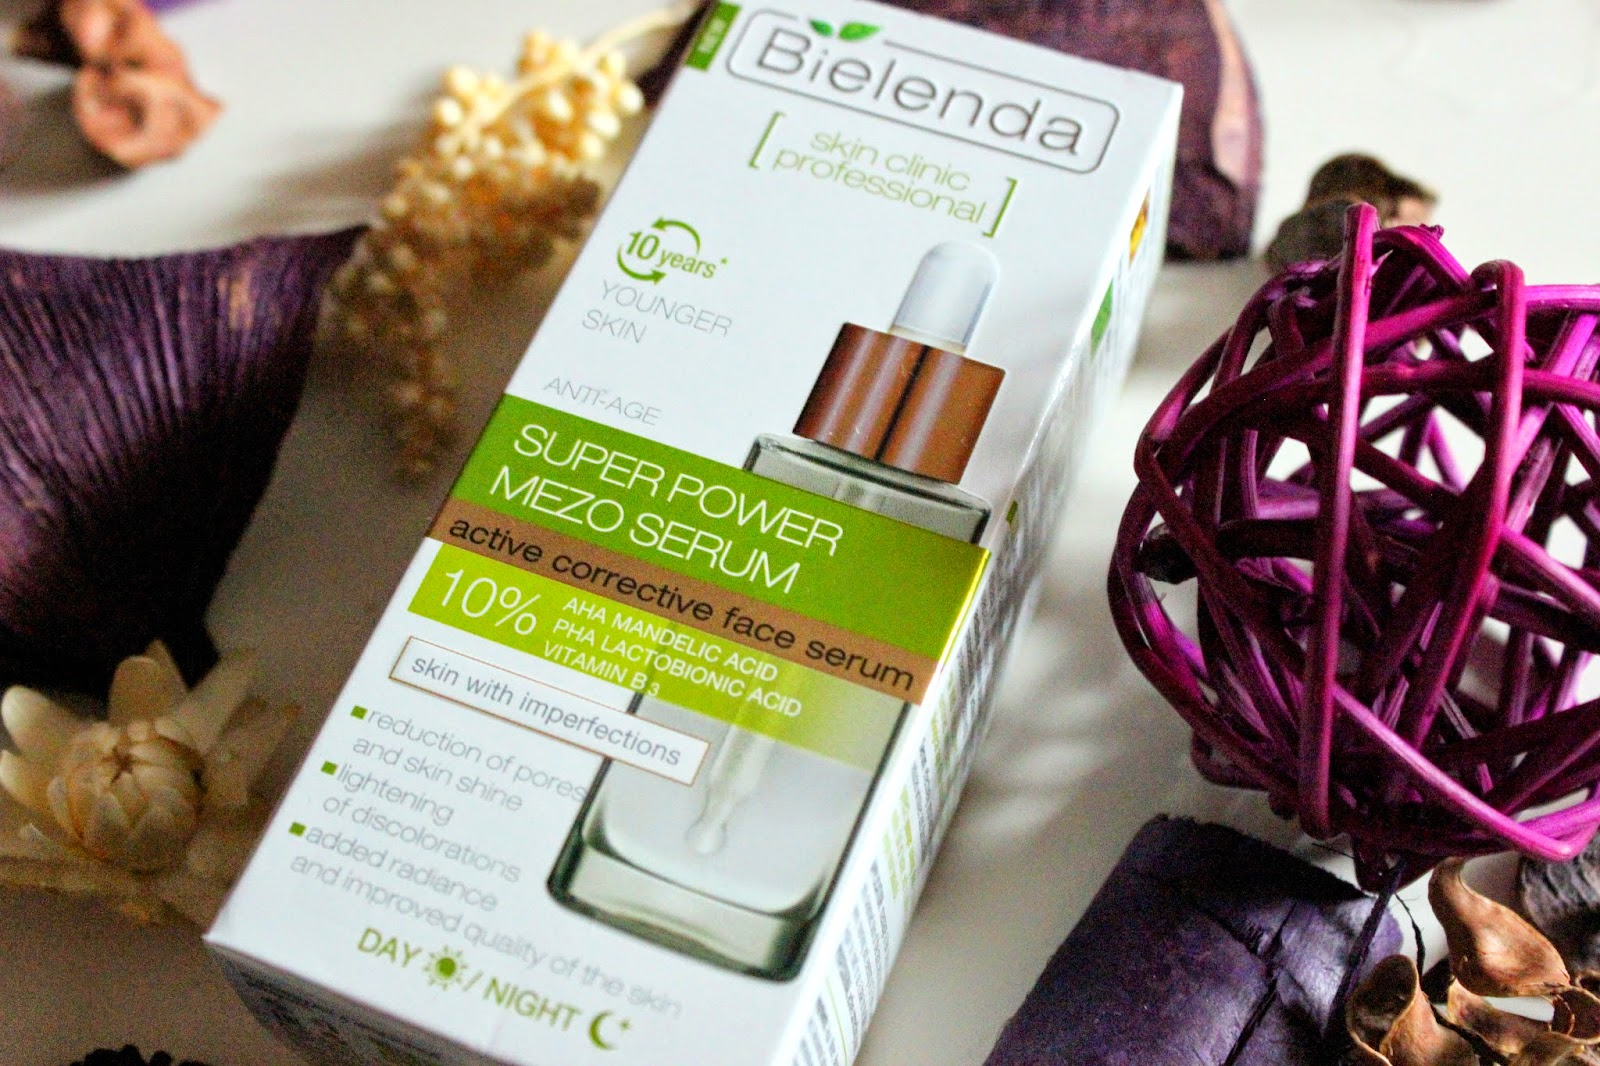 Bielenda - SUPER POWER MEZO SERUM